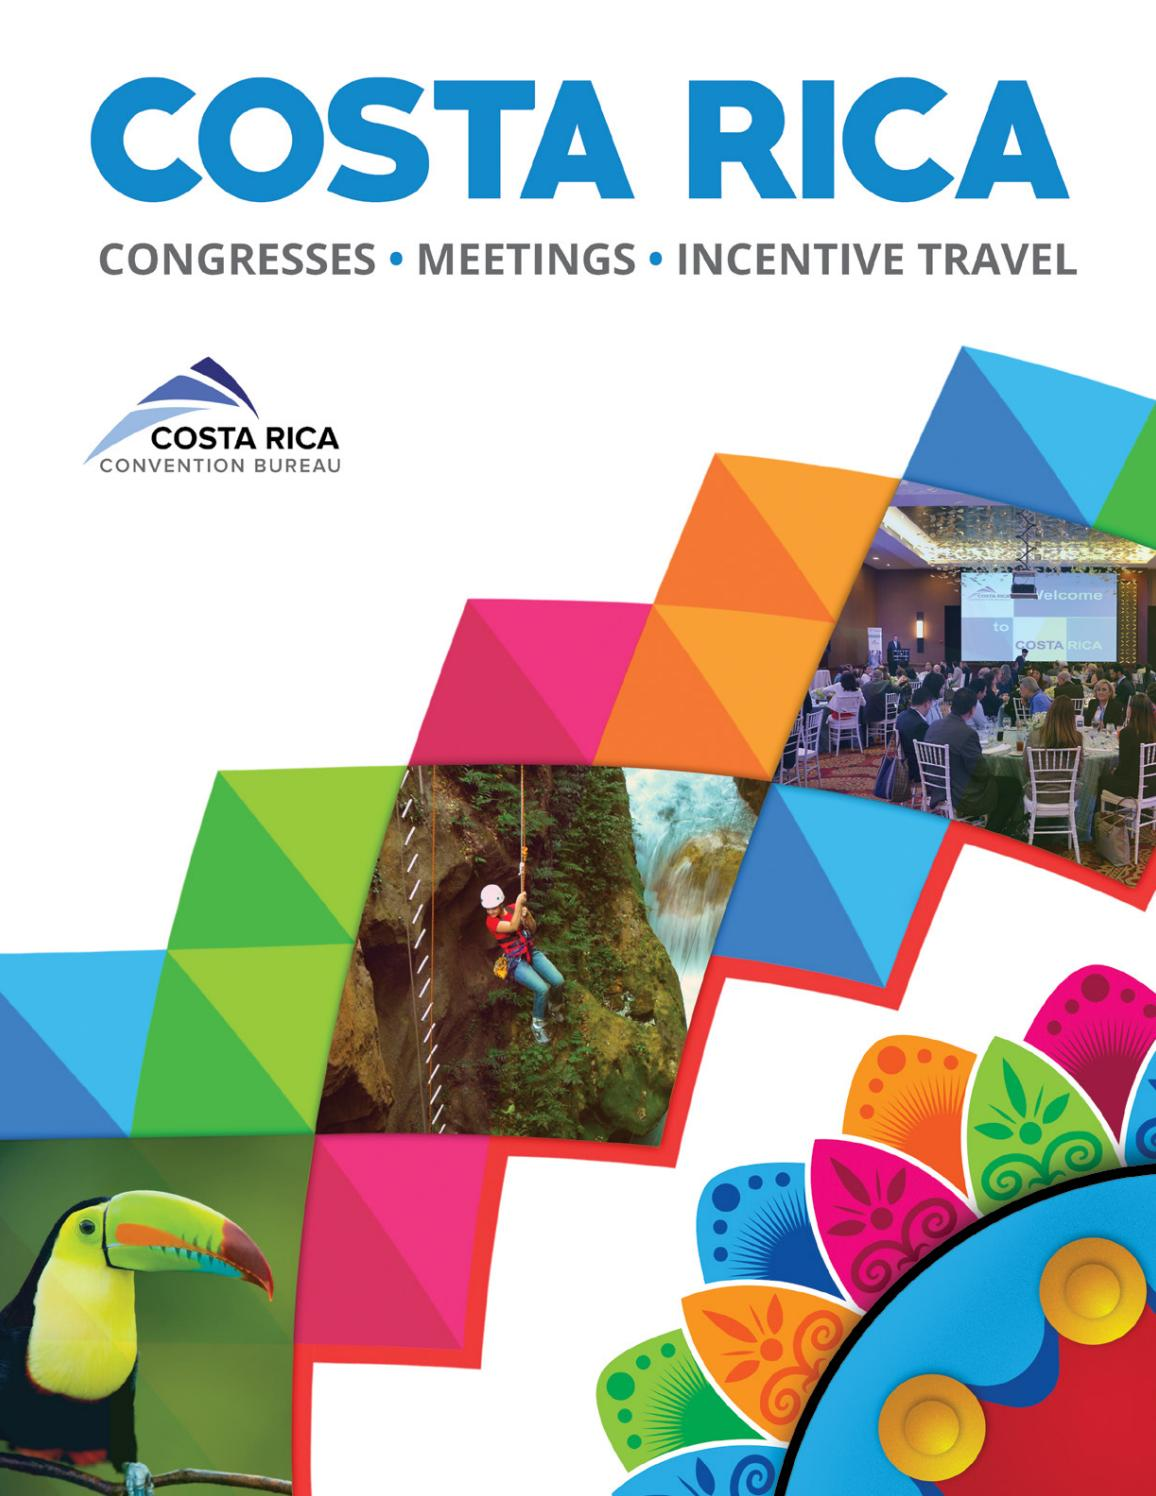 Official Guide Of Meetings And Incentives Of Costa Rica By